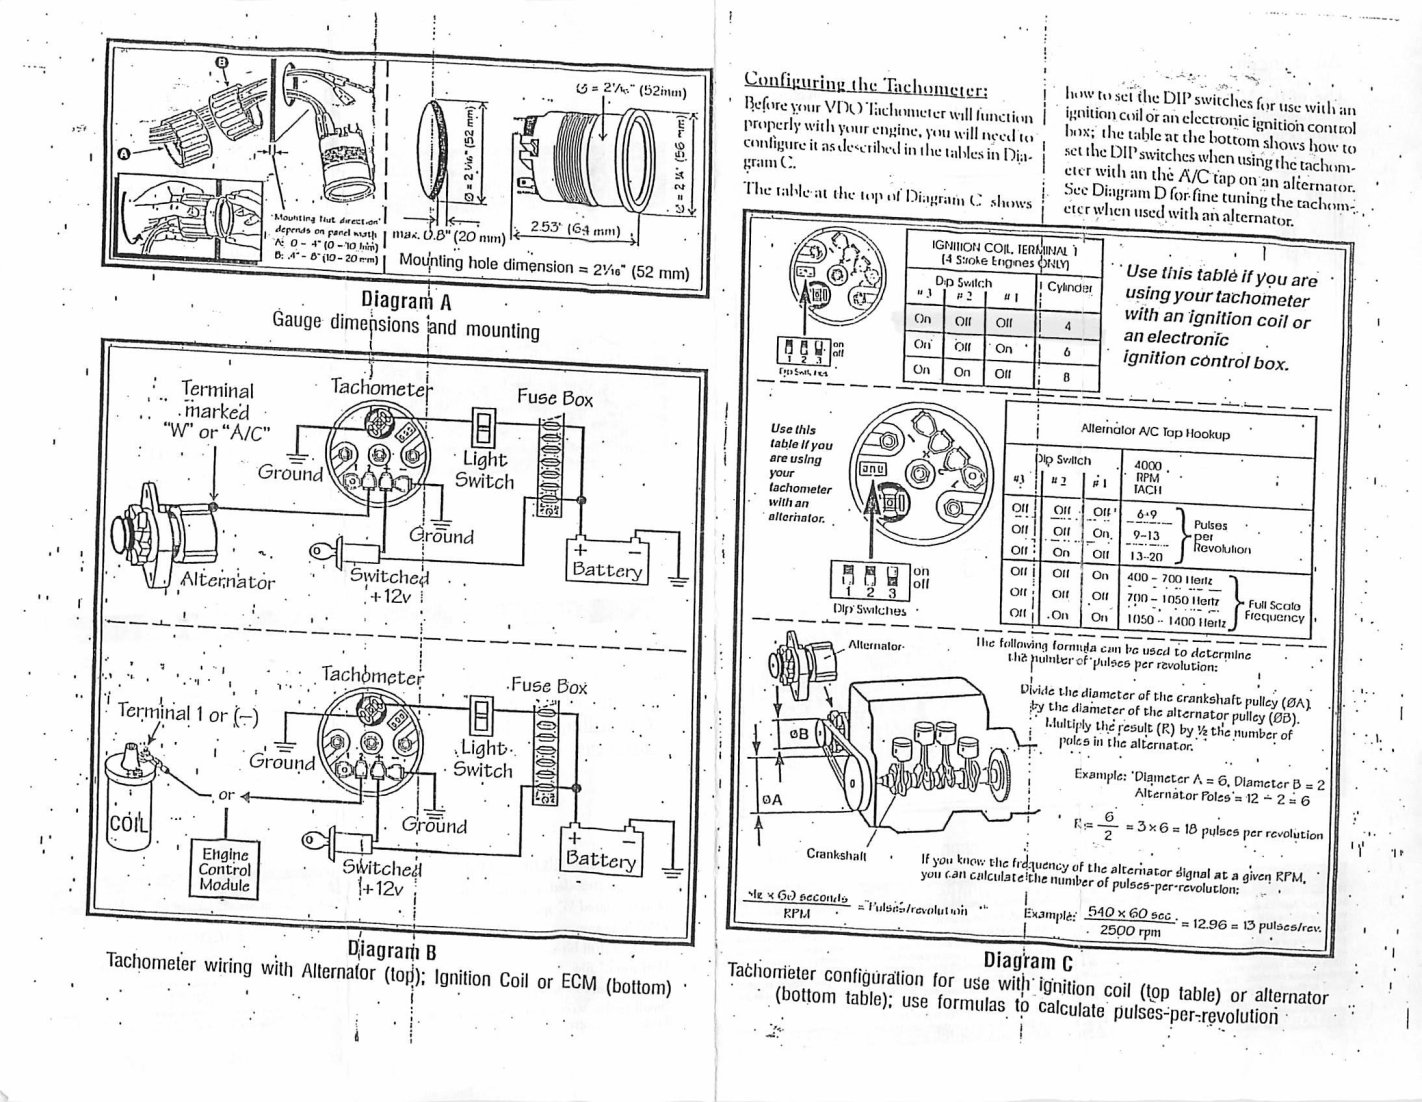 20 Hp Kohler Engine Wiring Diagram also Winch From Both Batteries together with Kenmore 80 Series Washer Parts Diagram besides Arctic Fox Wiring Diagram moreover Remote Control Assy Manual Version 1. on boat switch wiring diagram